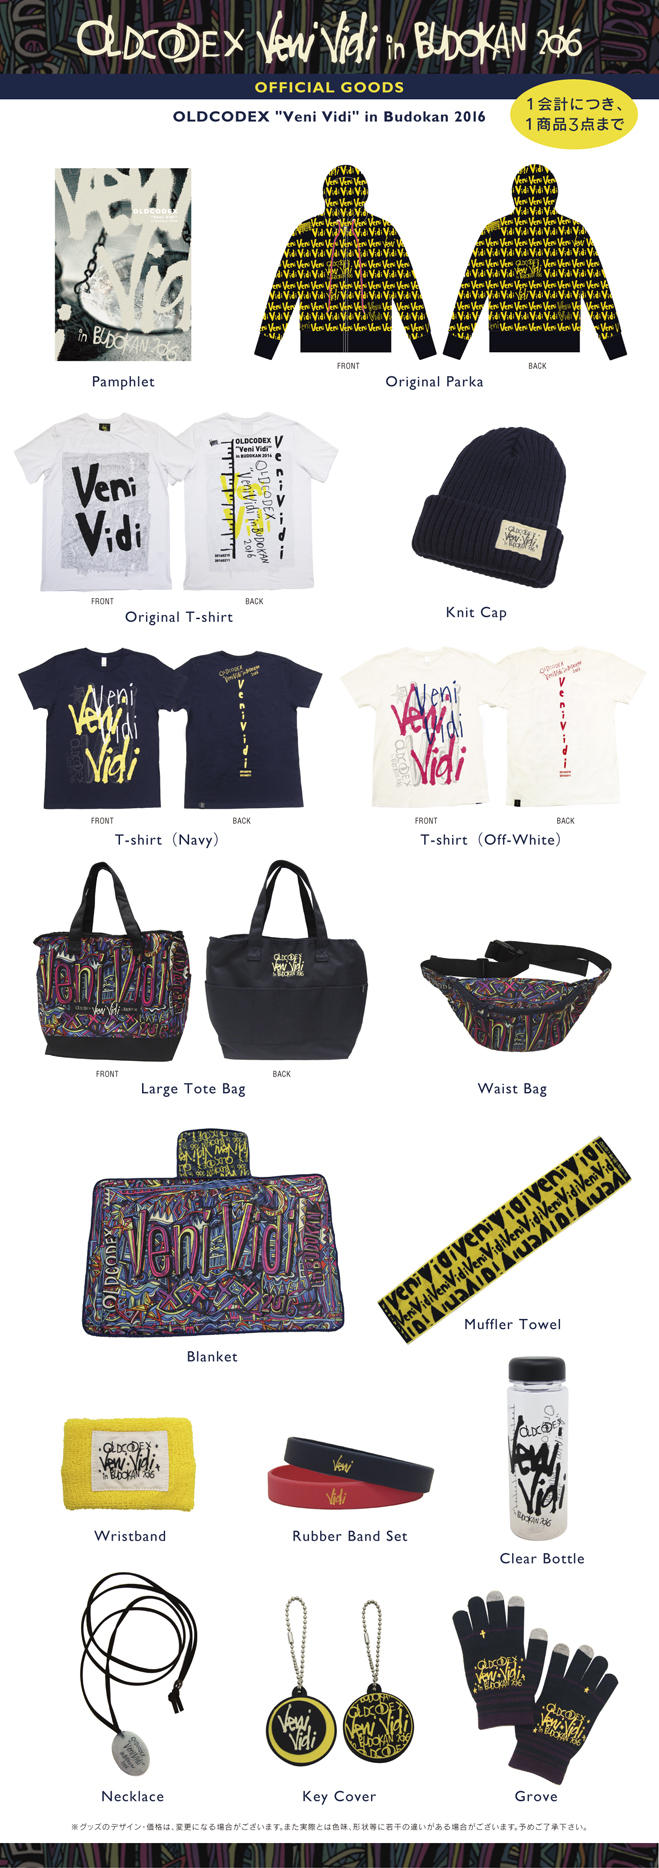 "OLDCODEX ""Veni Vidi"" in BUDOKAN 2016 OFFICIAL GOODS"